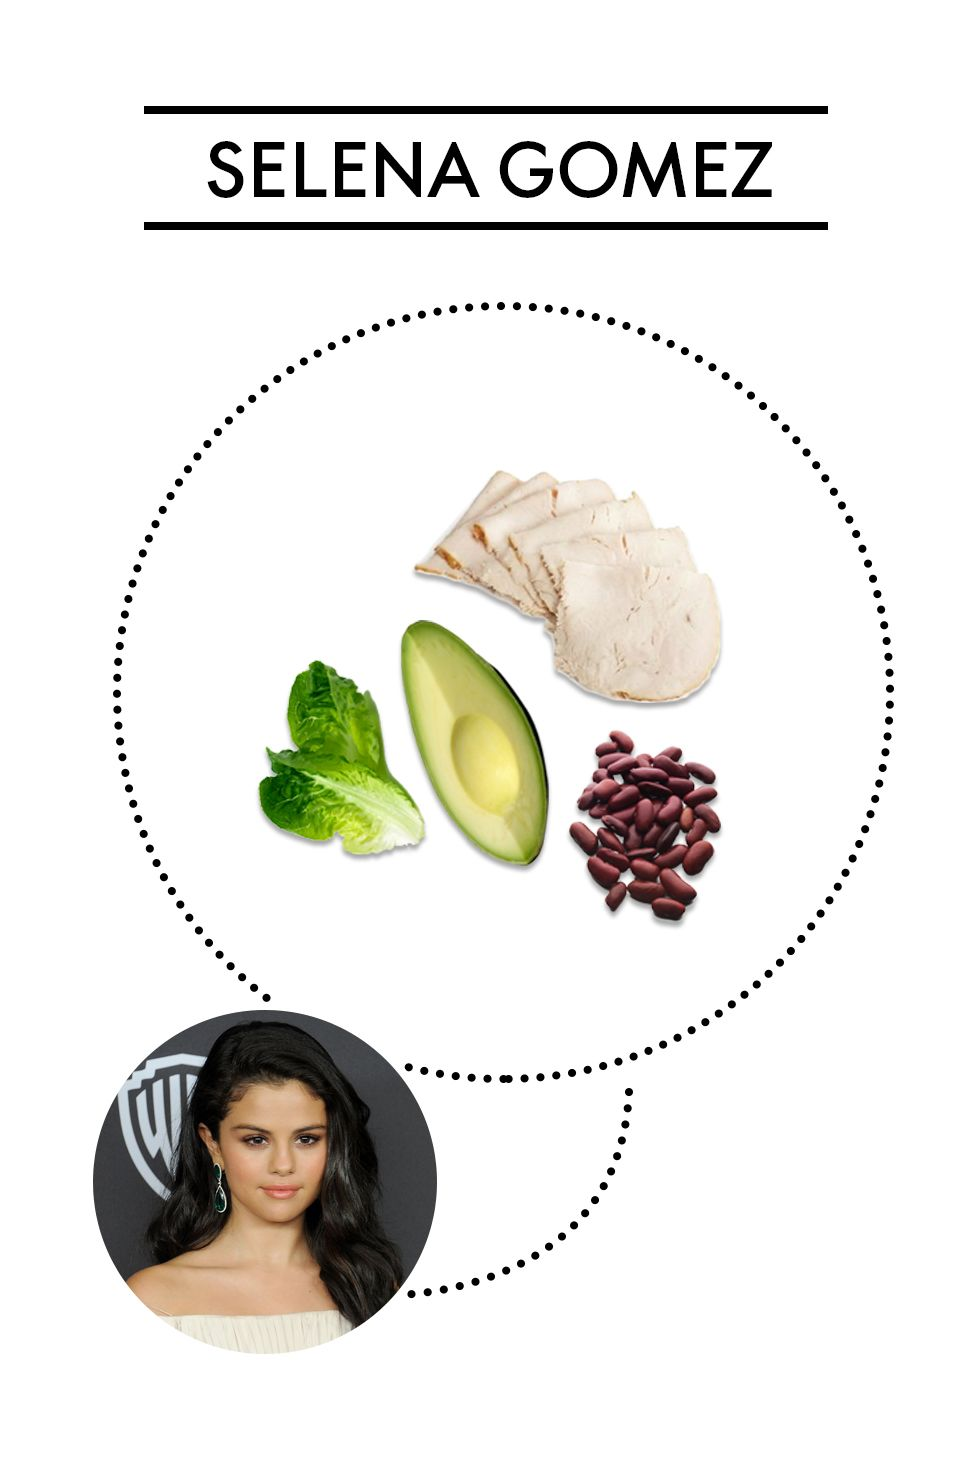 """<p><strong>Ingredients: </strong>Turkey, avocado, beans, over a bed of greens</p><p>Selena's longtime trainer Amy Rosoff Davis <a href=""""http://www.cosmopolitan.com/health-fitness/a58235/selena-gomez-trainer-amy-rosoff-davis-diet-fitness-tips/"""" target=""""_blank"""">revealed</a> the singer's """"power salad"""" includes all of the above with a homemade dressing of red wine vinegar, olive oil, dijon mustard, and lemon juice.</p>"""